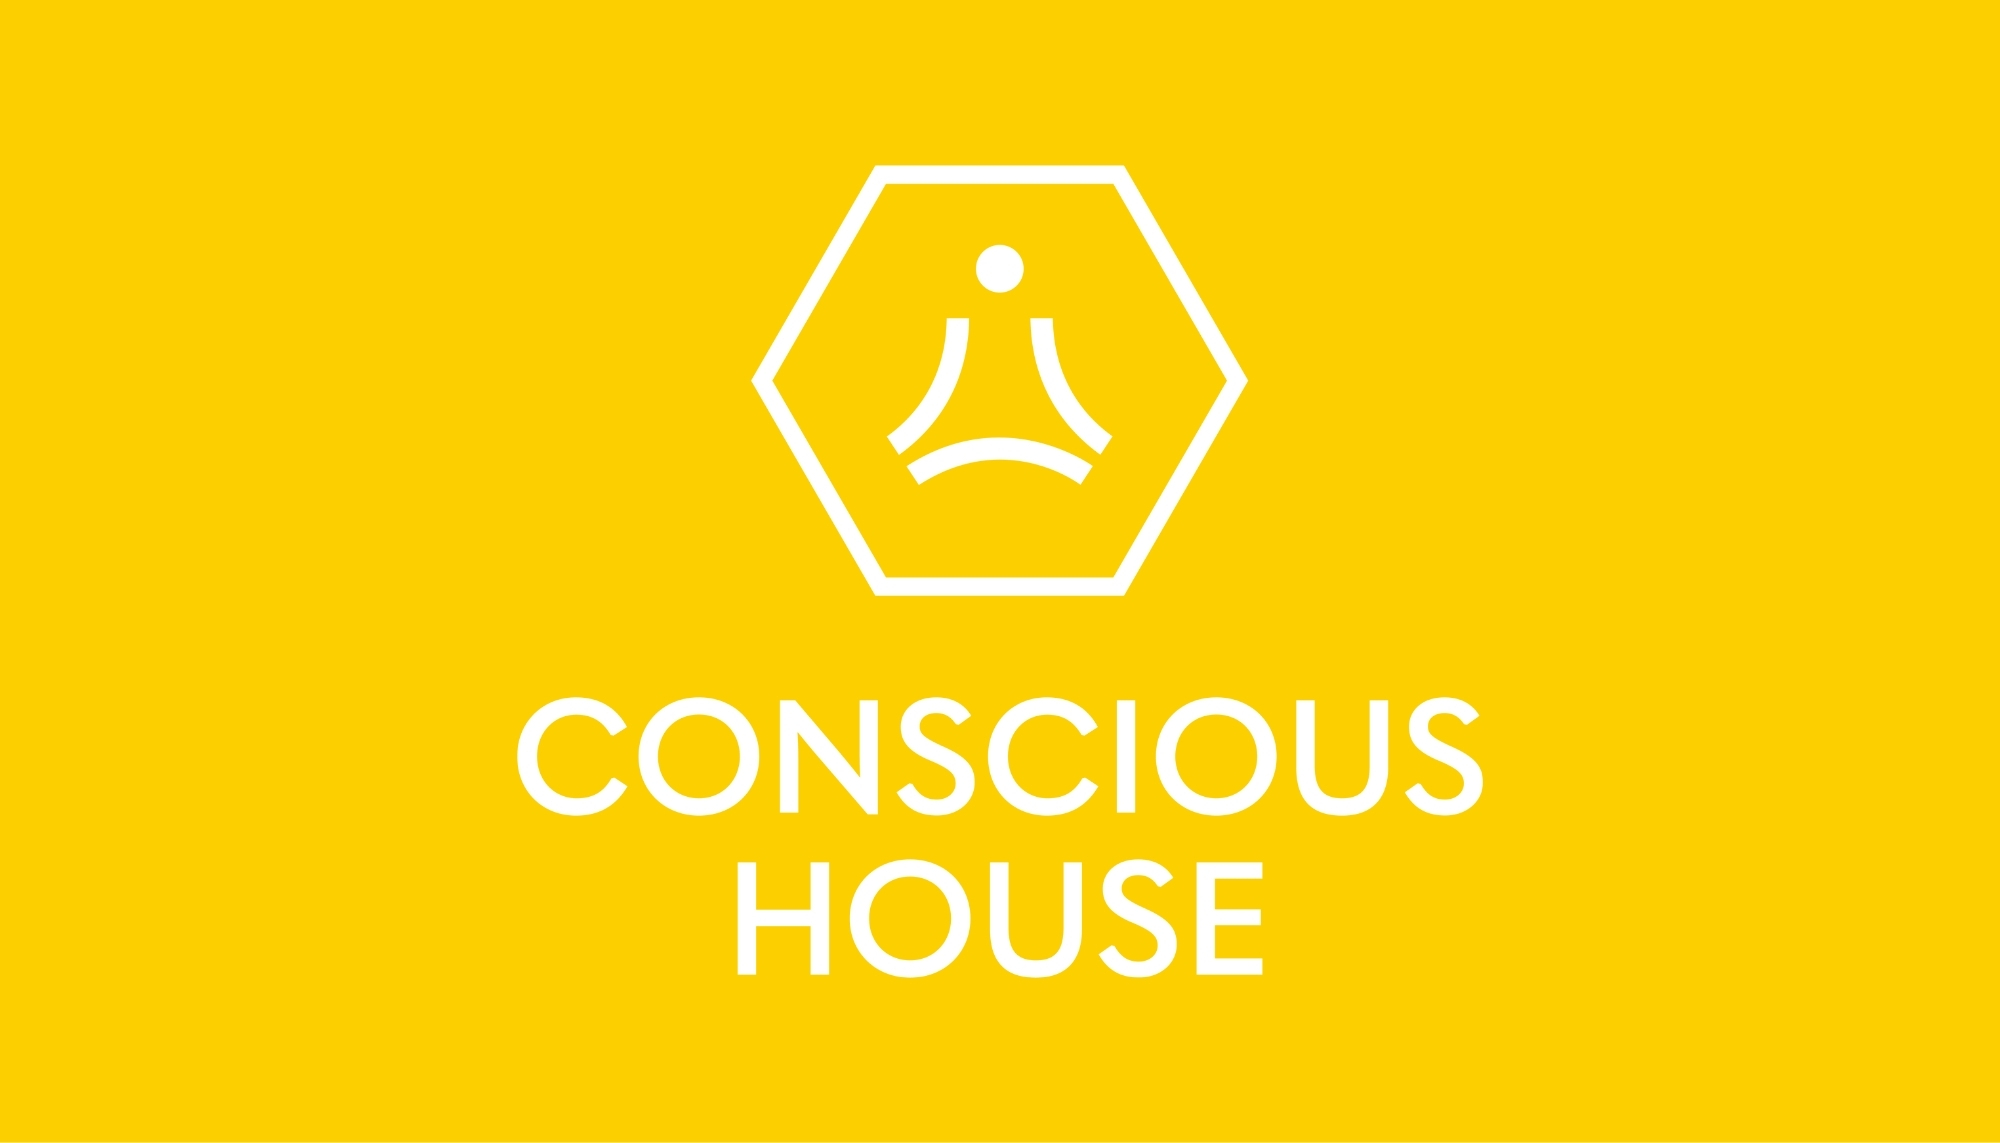 Conscious House, The Private Practice of Neil Seligman